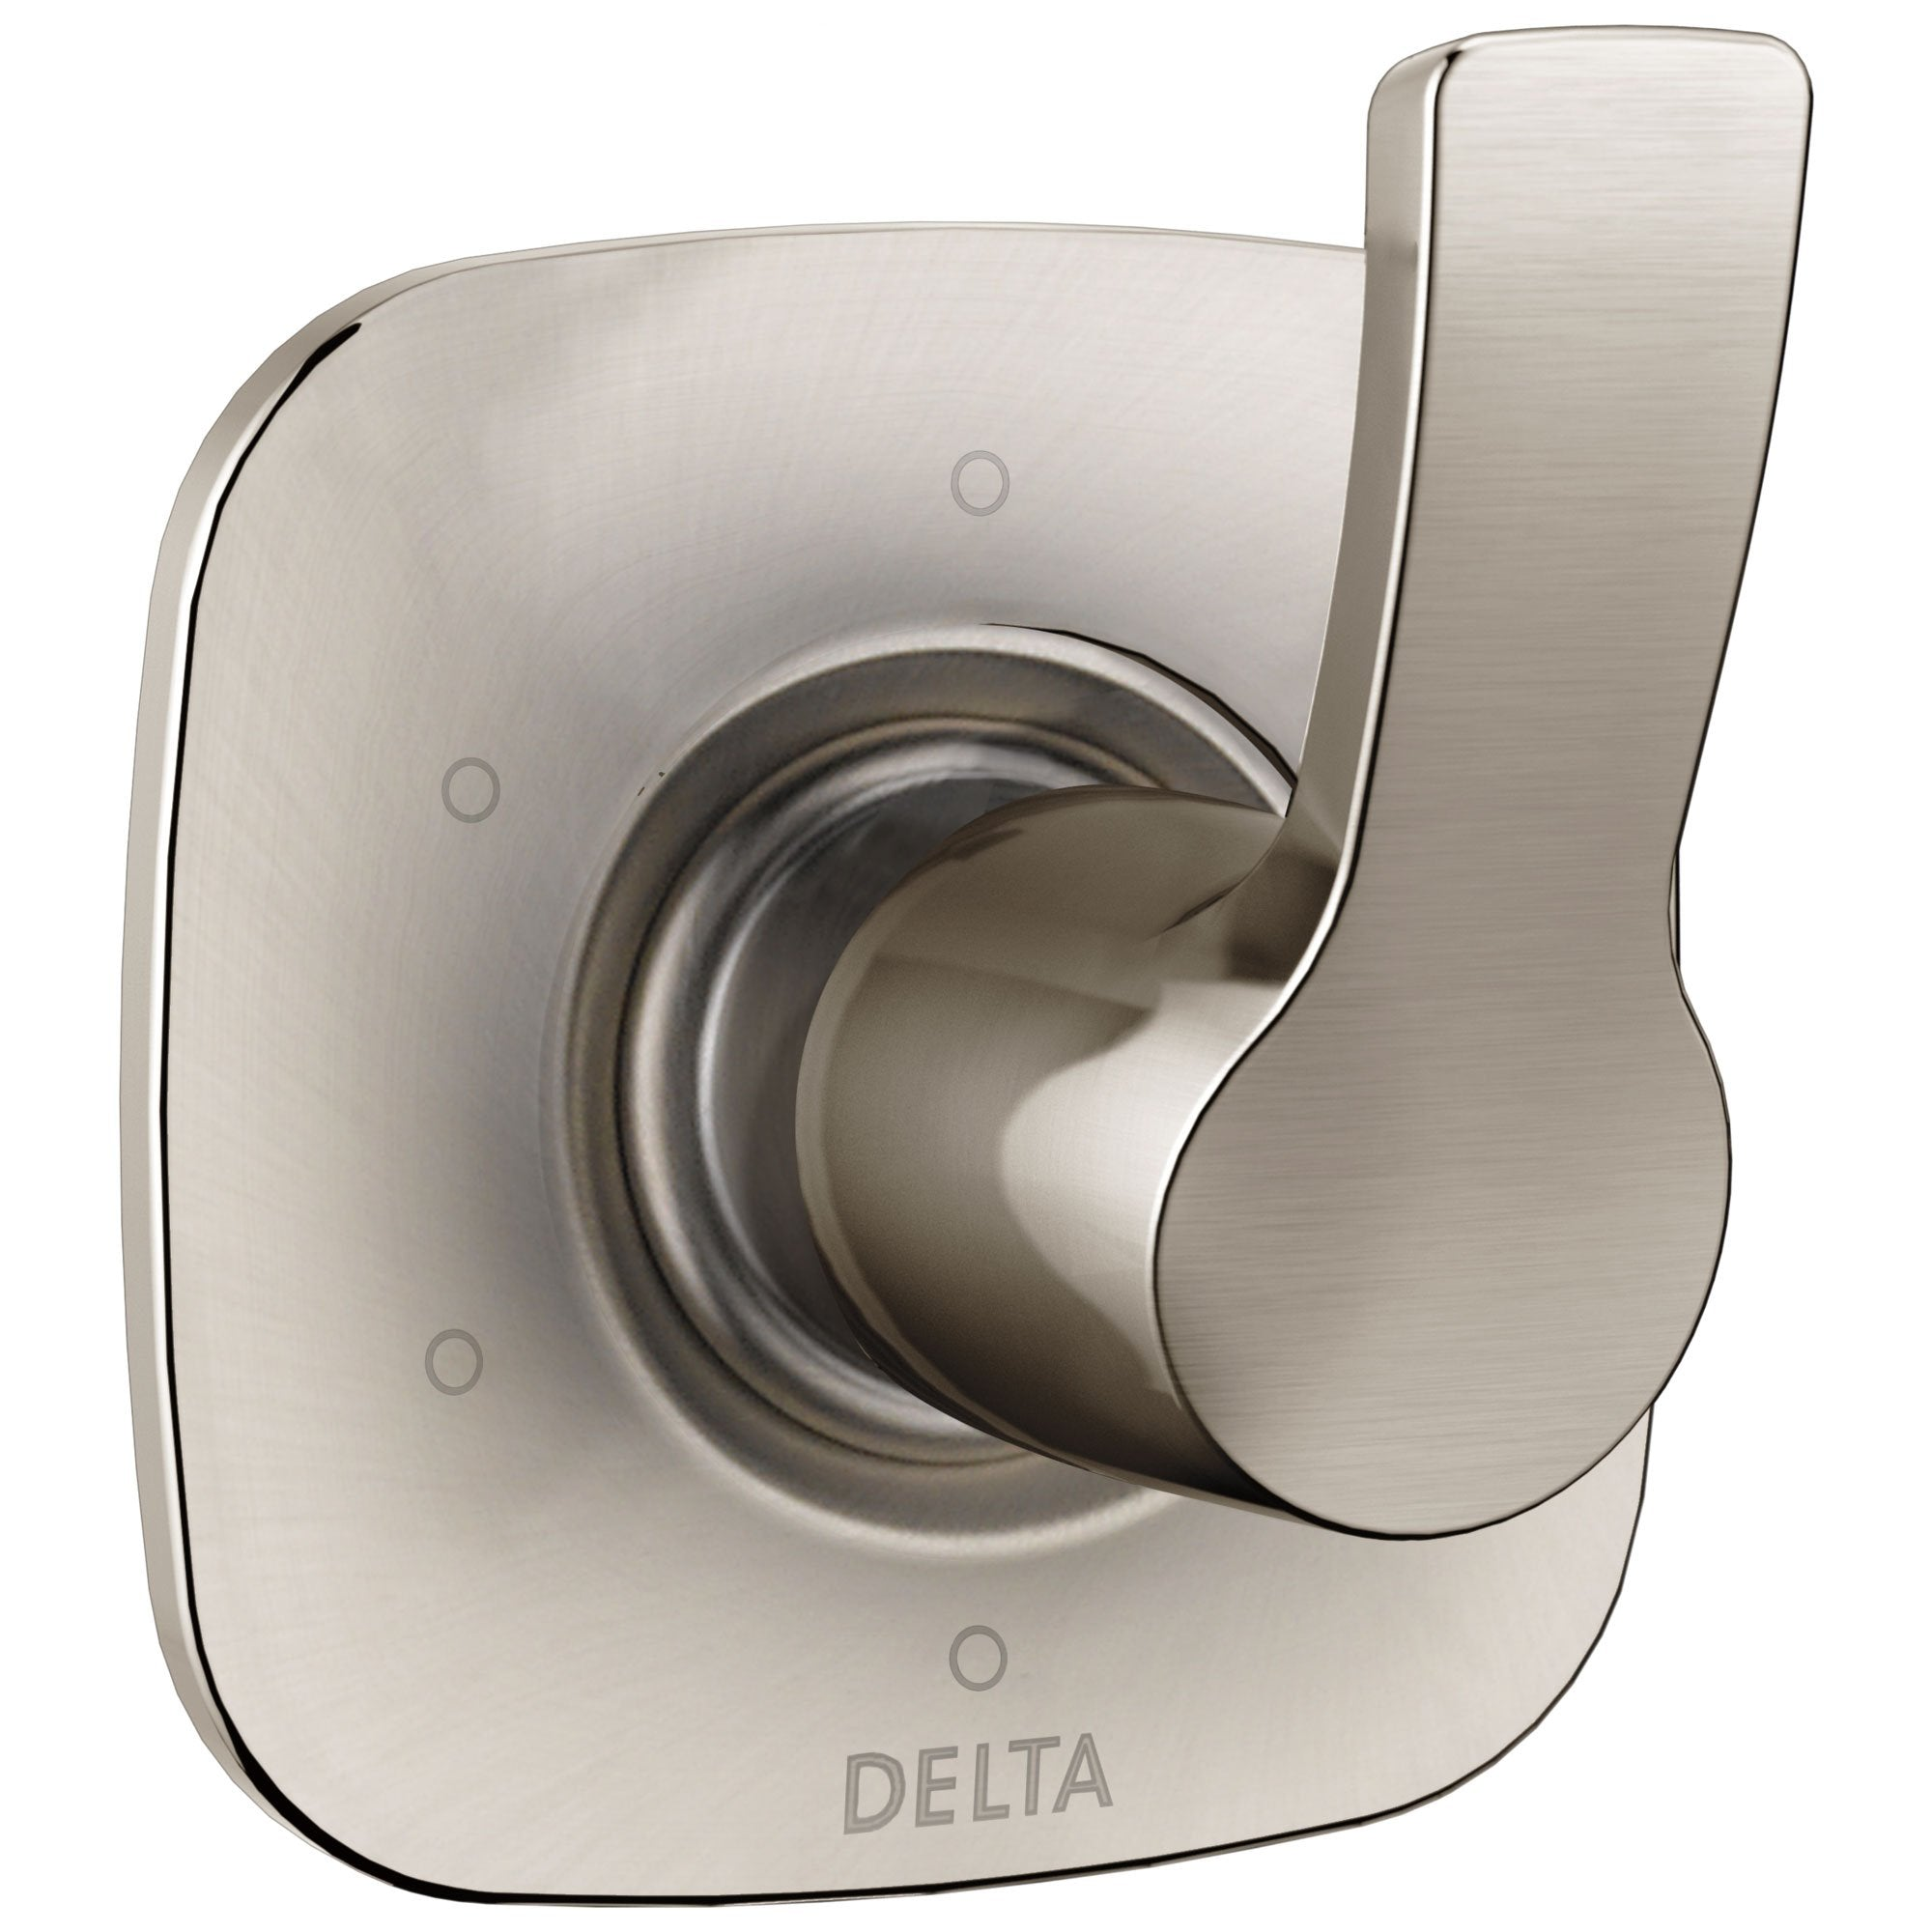 Delta Tesla Collection Stainless Steel Finish 6-Setting 3-Port Modern Single Handle Shower Diverter Includes Rough-in Valve D2053V